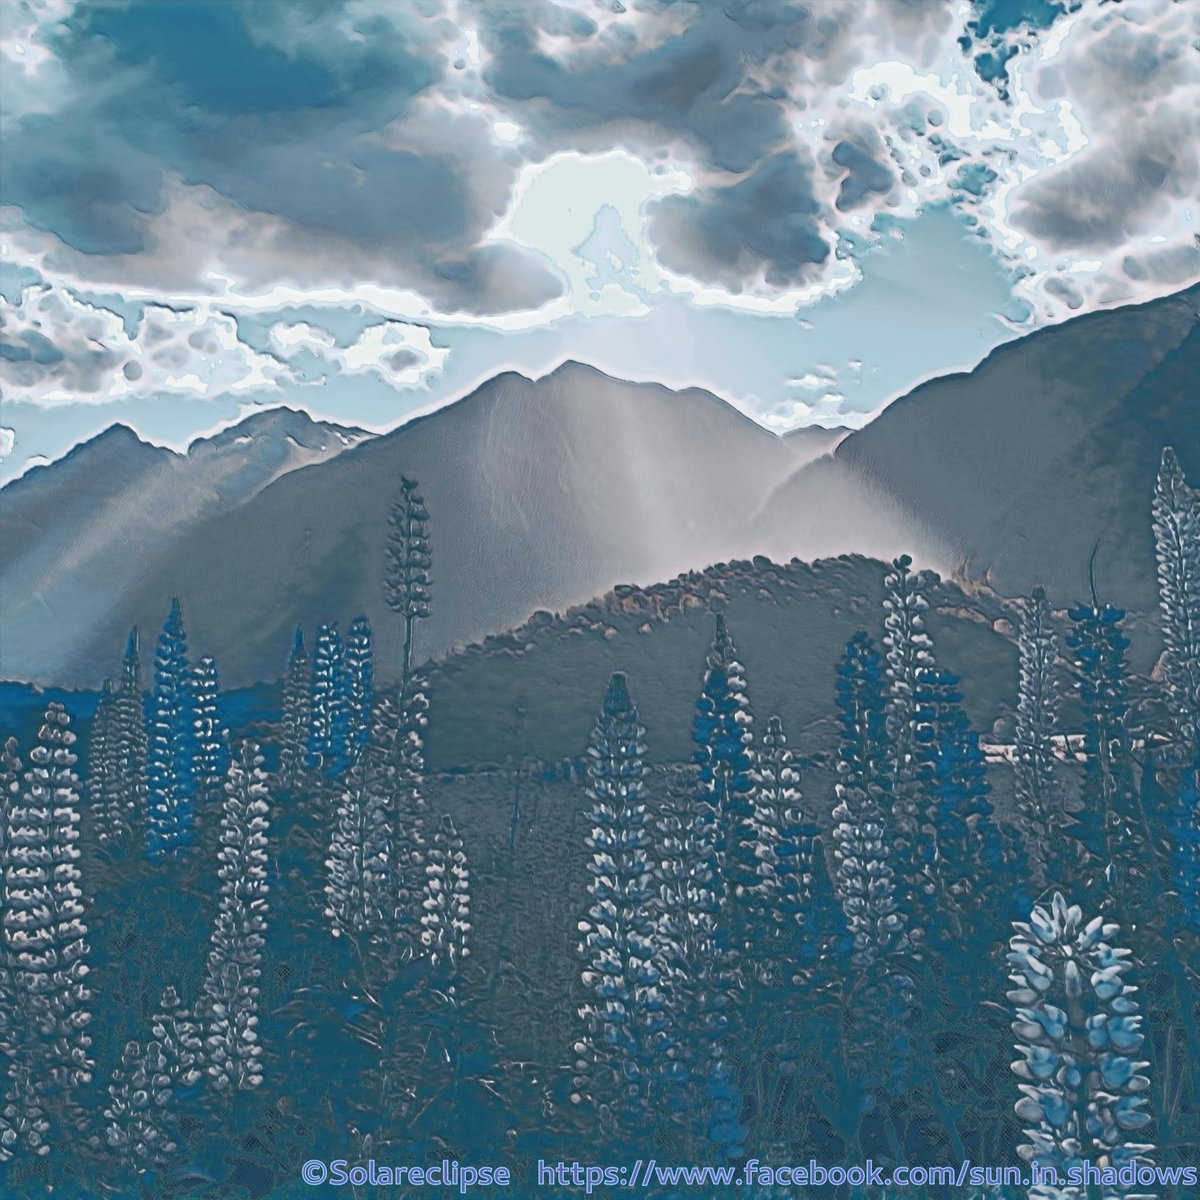 Something In The Air II Digital Art created via Convolutional Neural Networks and Deep Learning  #suninshadow #lupine #bloom #blossom #sun #sunshine #summer #nature #landscape #sky #clouds #artwork #painting #digitalpainting #machinelearning #deeplearning